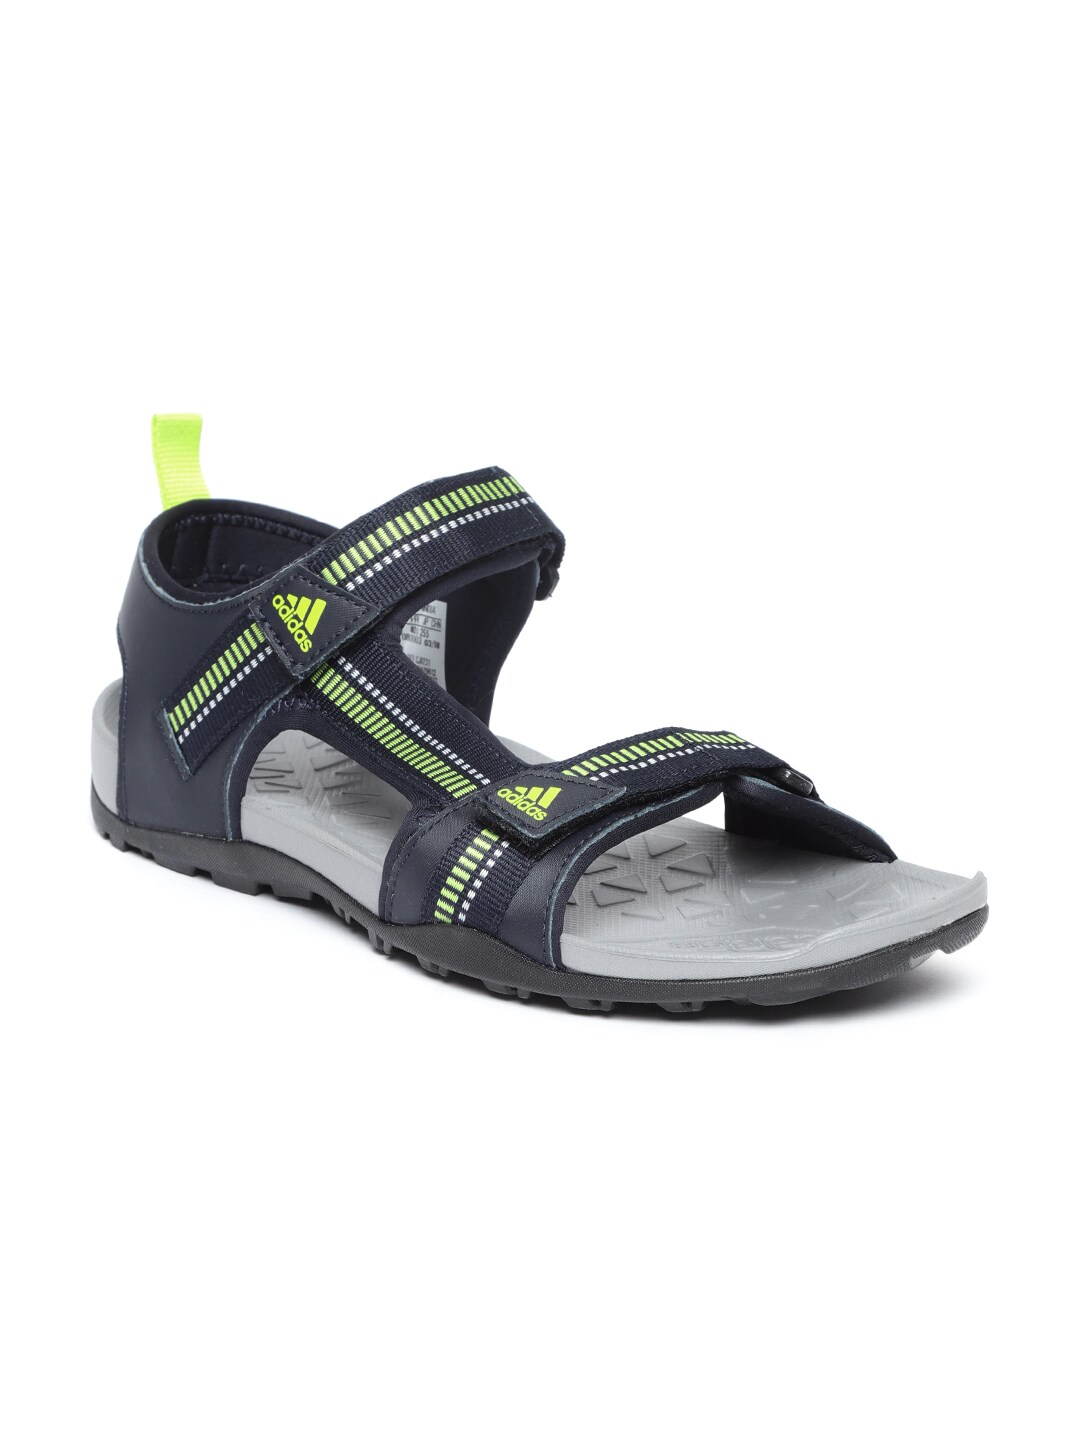 c8863641656 ... coupon adidas floaters buy adidas sports sandals online in india c193c  84e8b